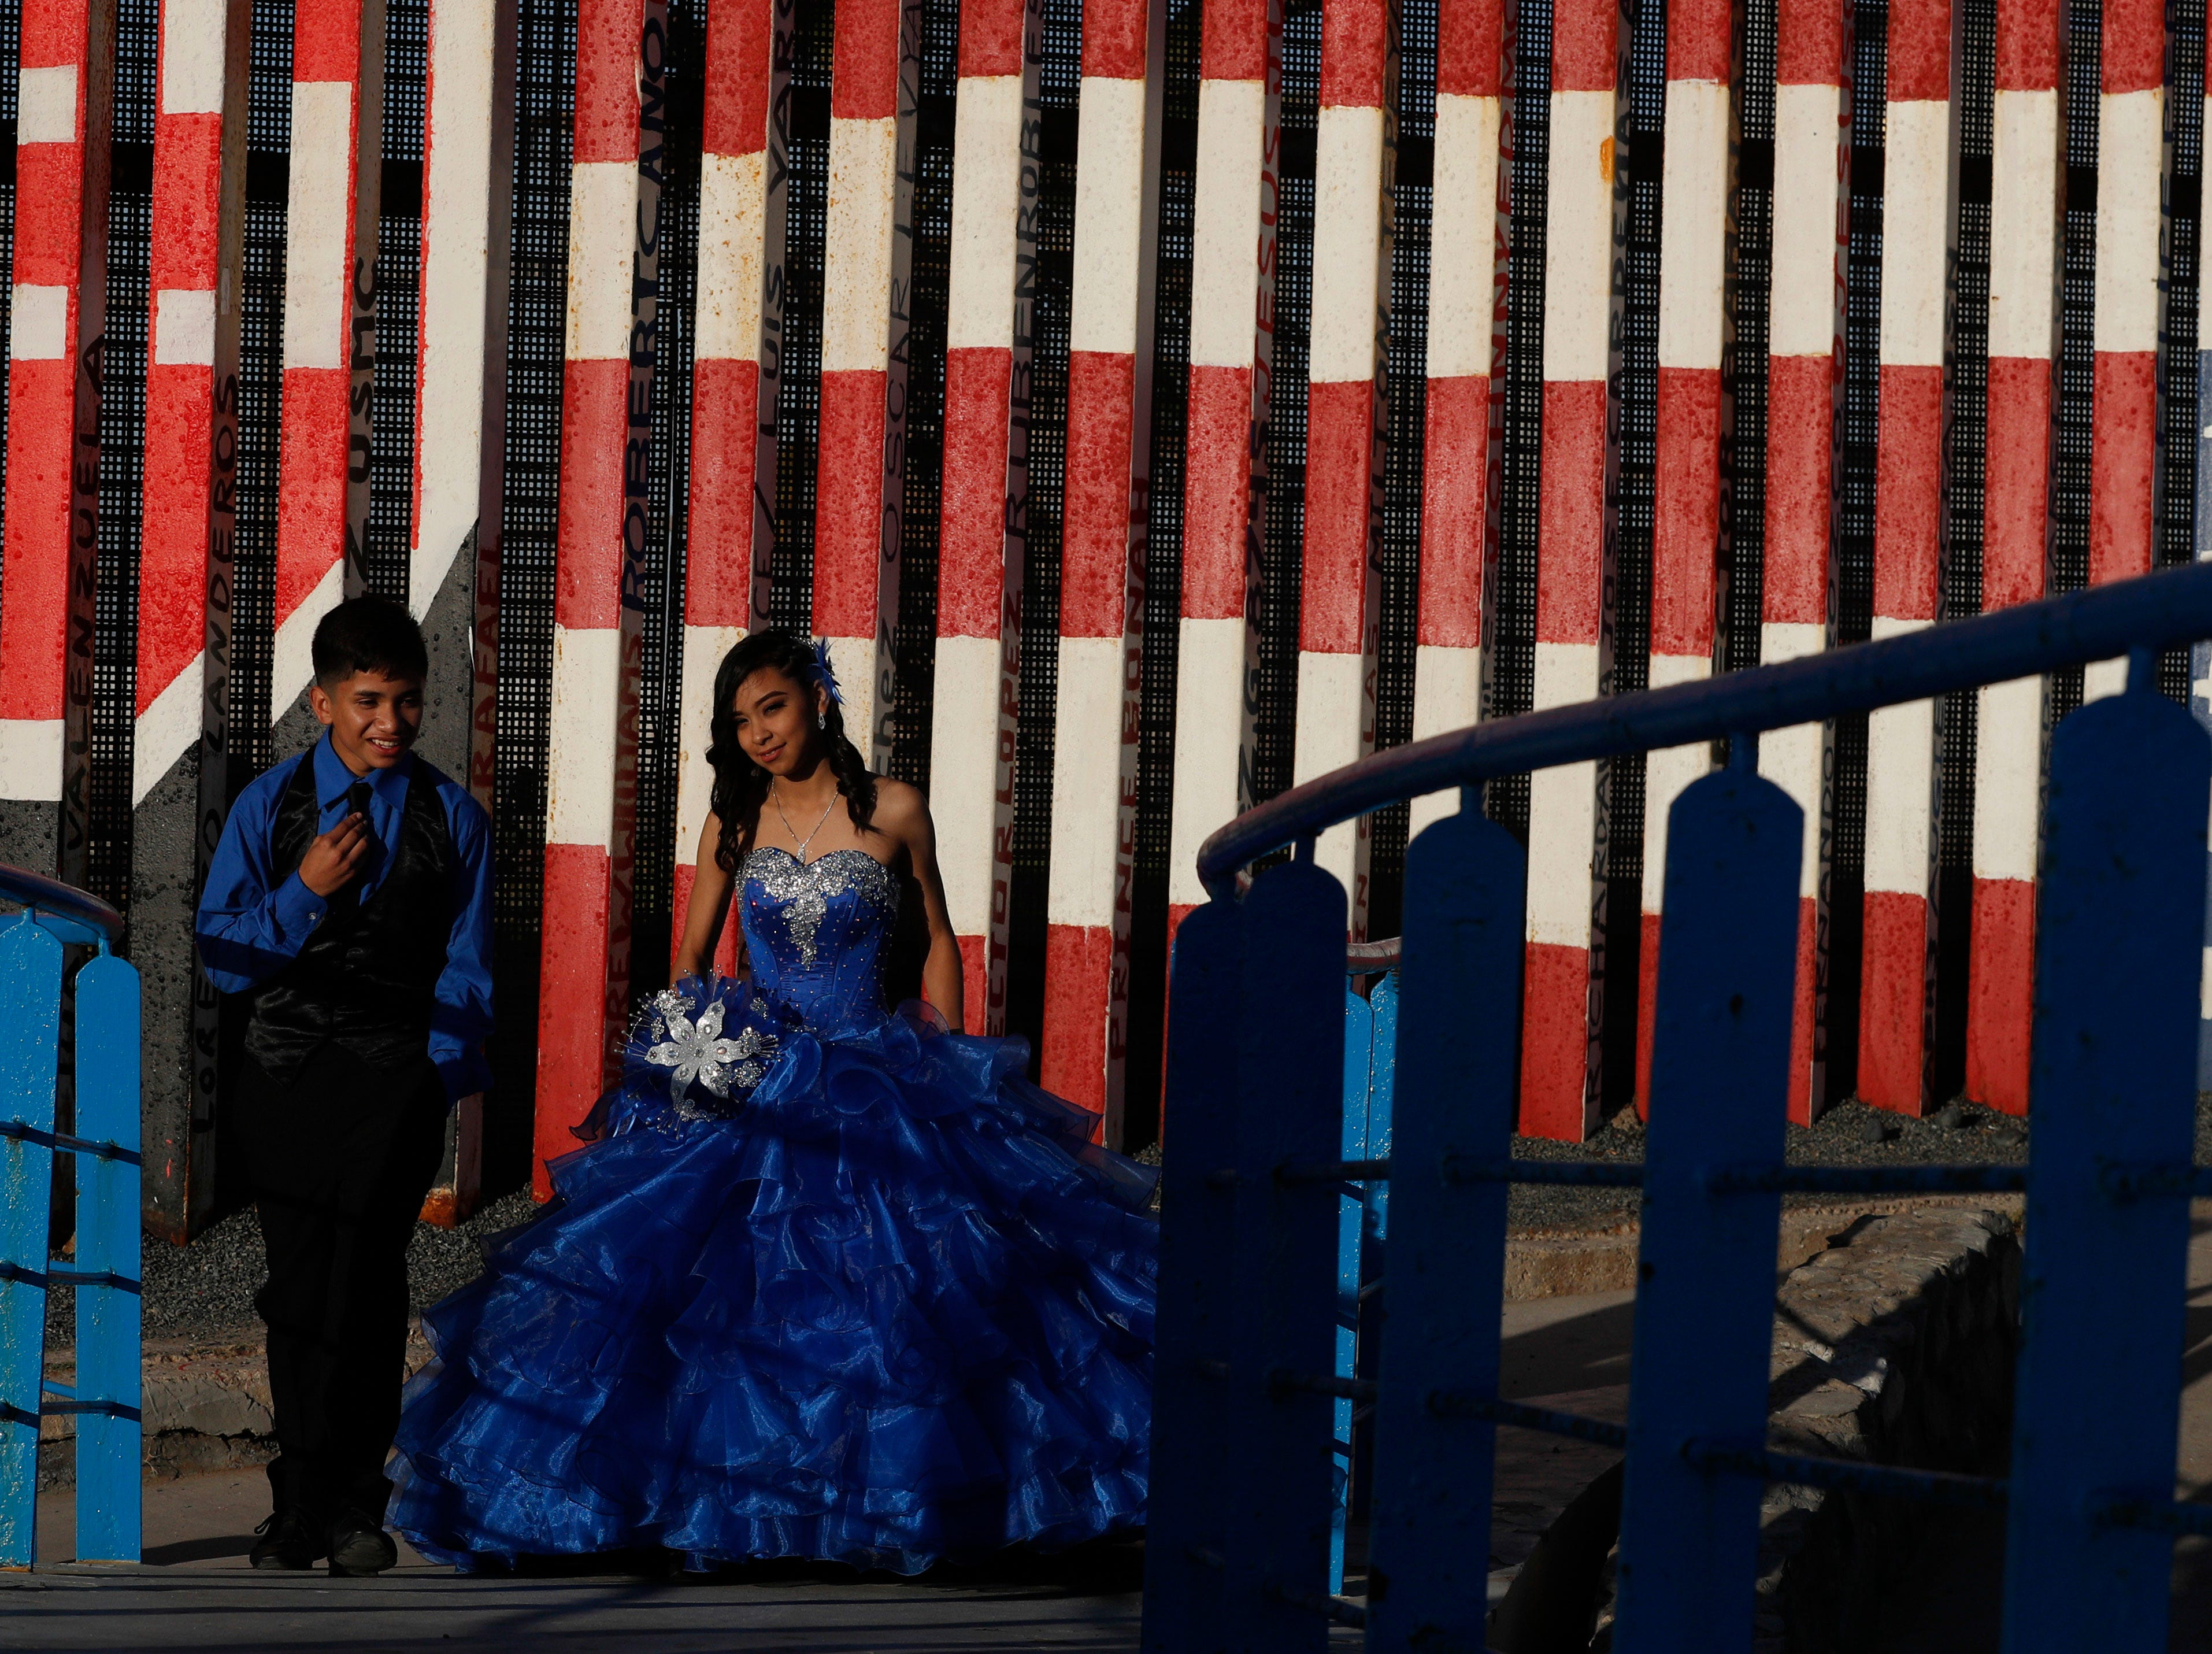 Josalyn Herrera walks in front of a section of the U.S. border wall painted in the colors of the American flag between poses during a photo session for her quinceanera, or 15th birthday celebration, in Tijuana, Mexico, Saturday, Dec. 8, 2018.